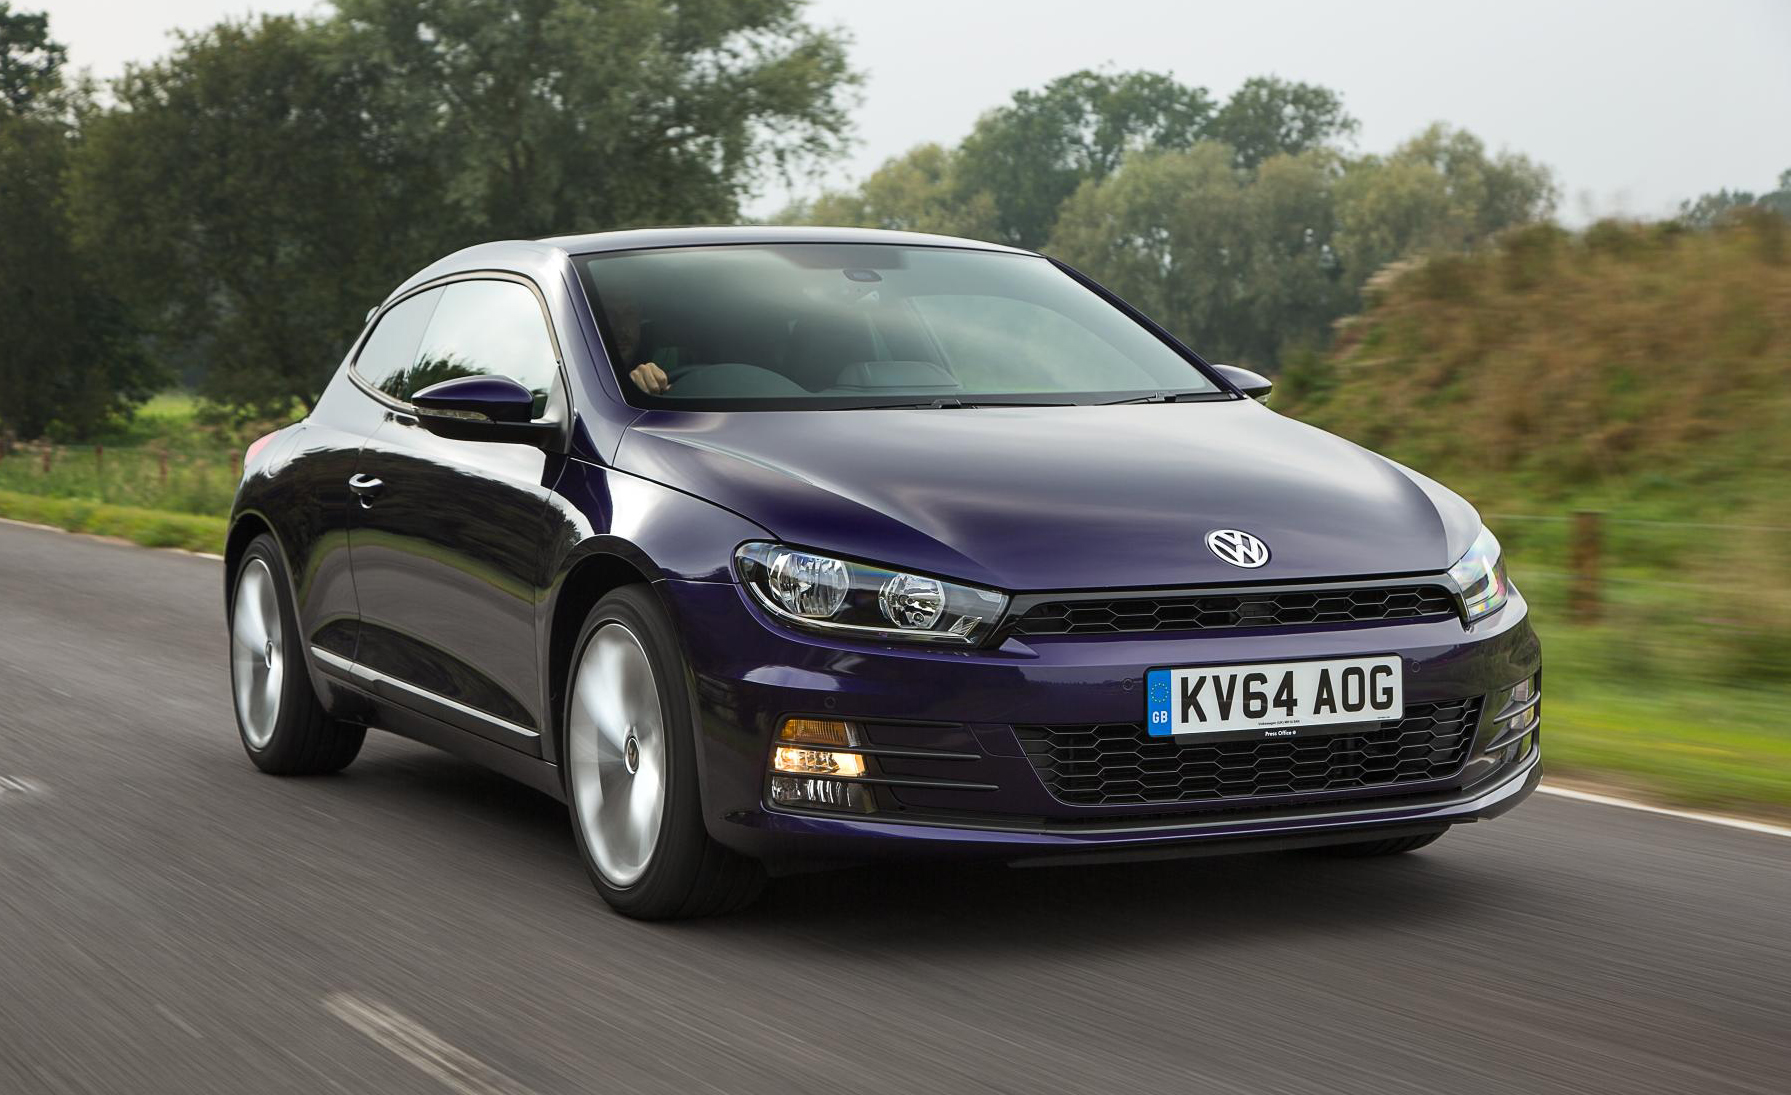 The VW Scirocco is now part of a dying breed of car